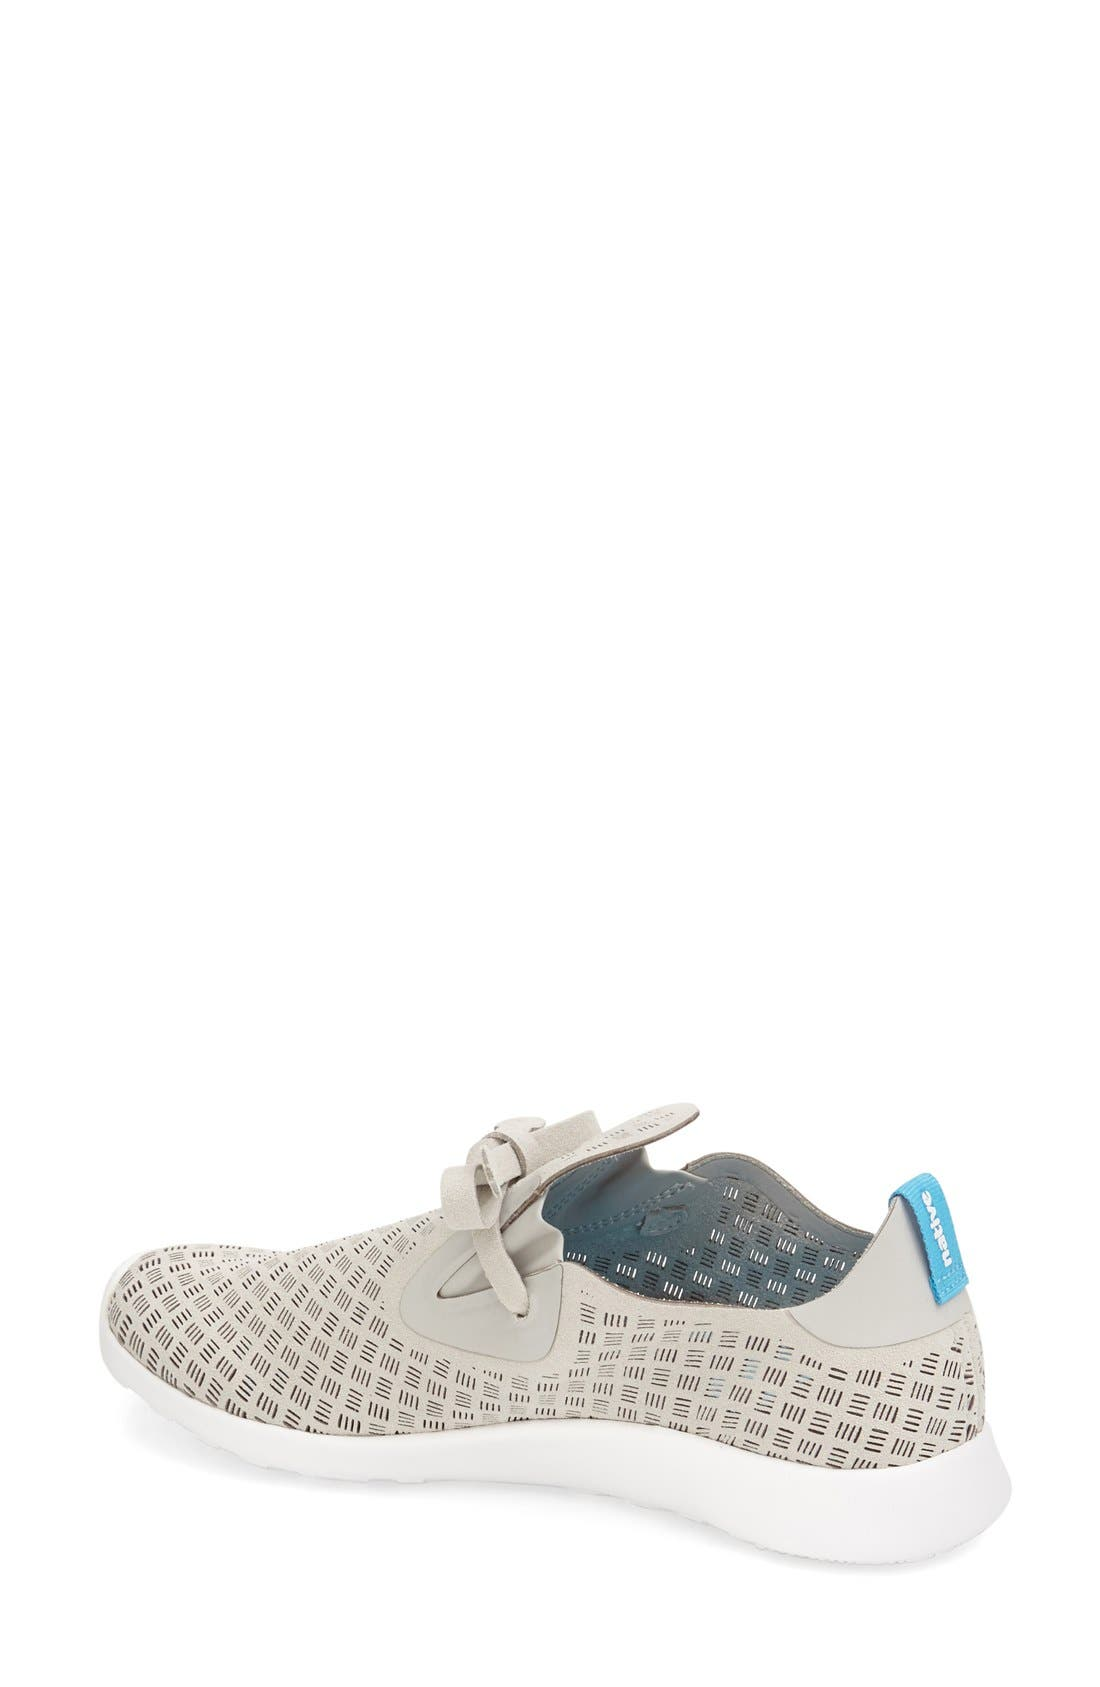 Alternate Image 2  - Native Shoes 'Apollo Mox XL' Perforated Sneaker (Women)